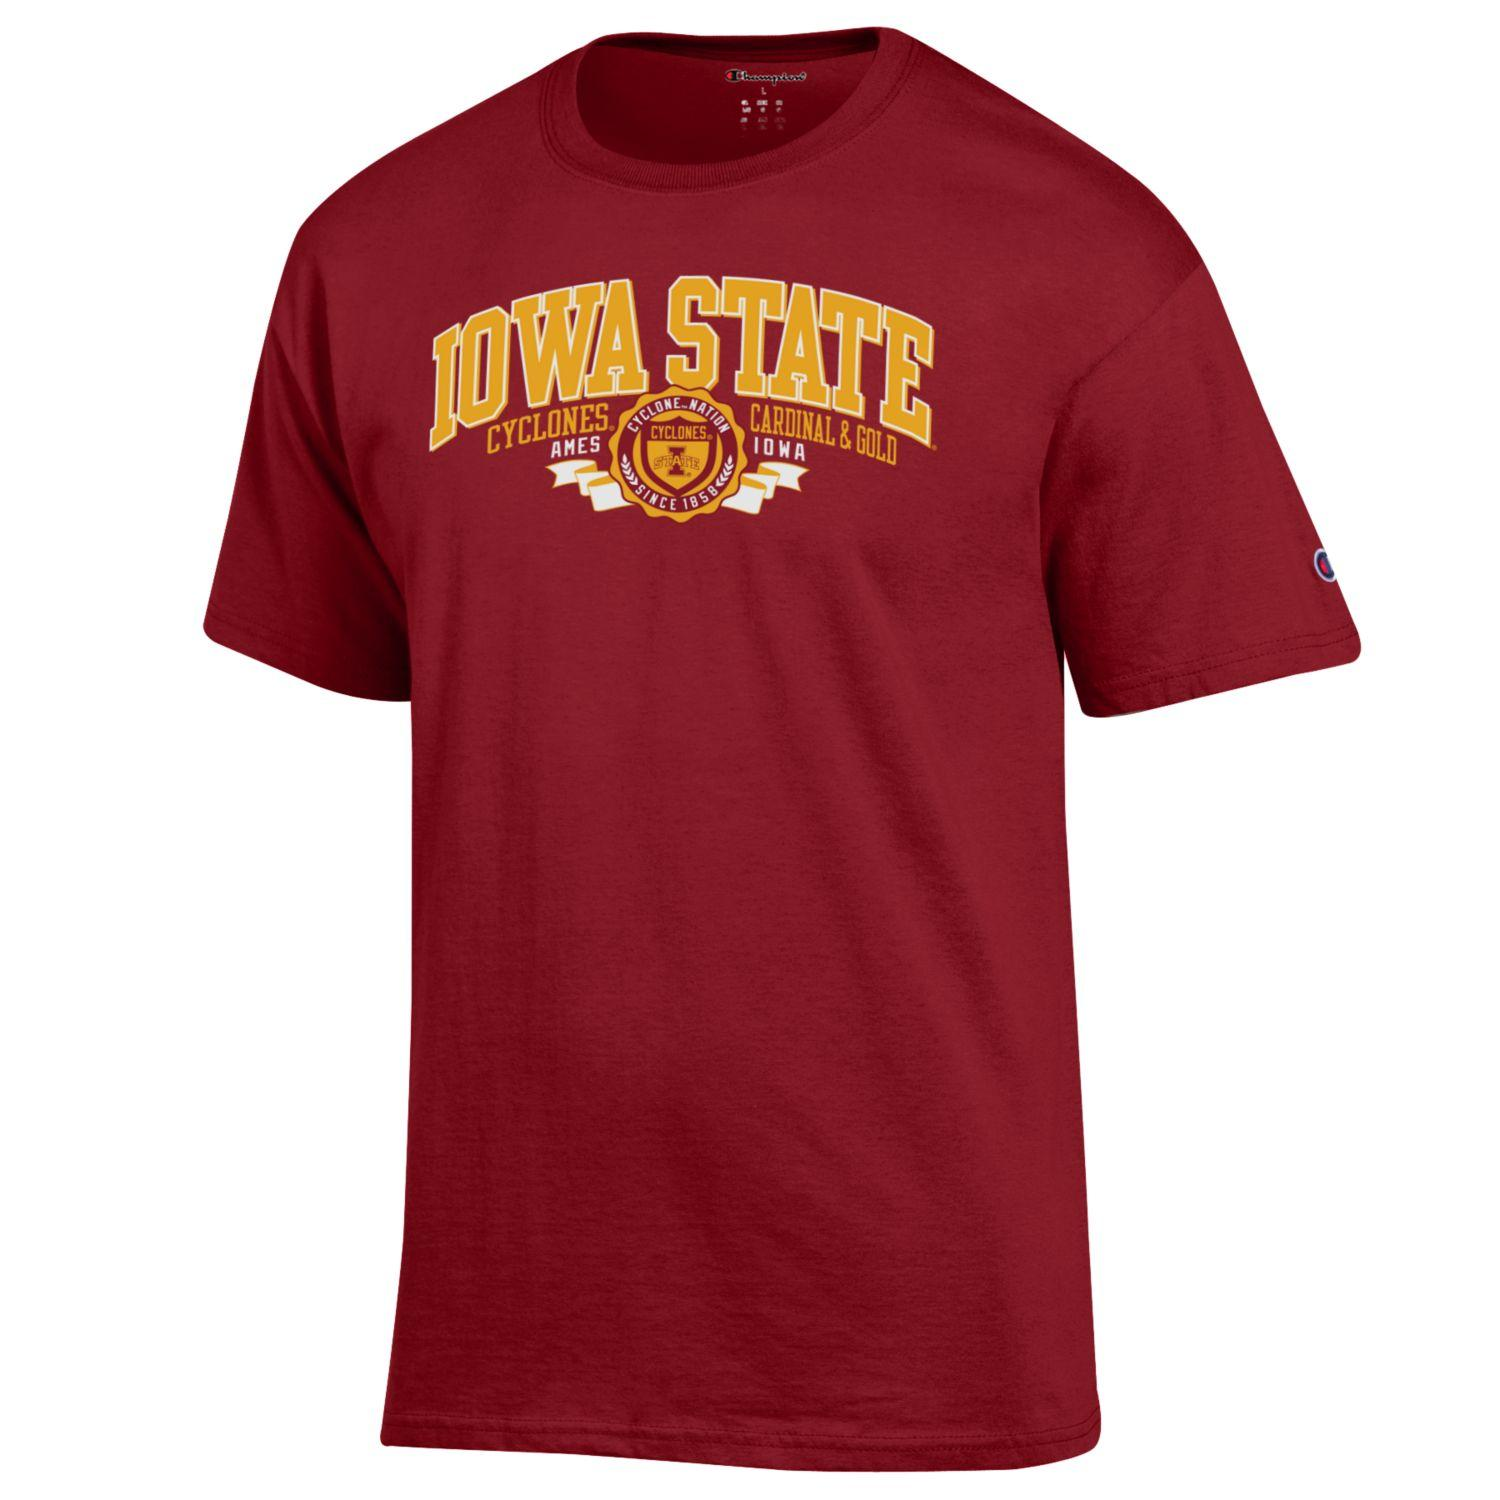 Iowa State Cyclone Nation Tee